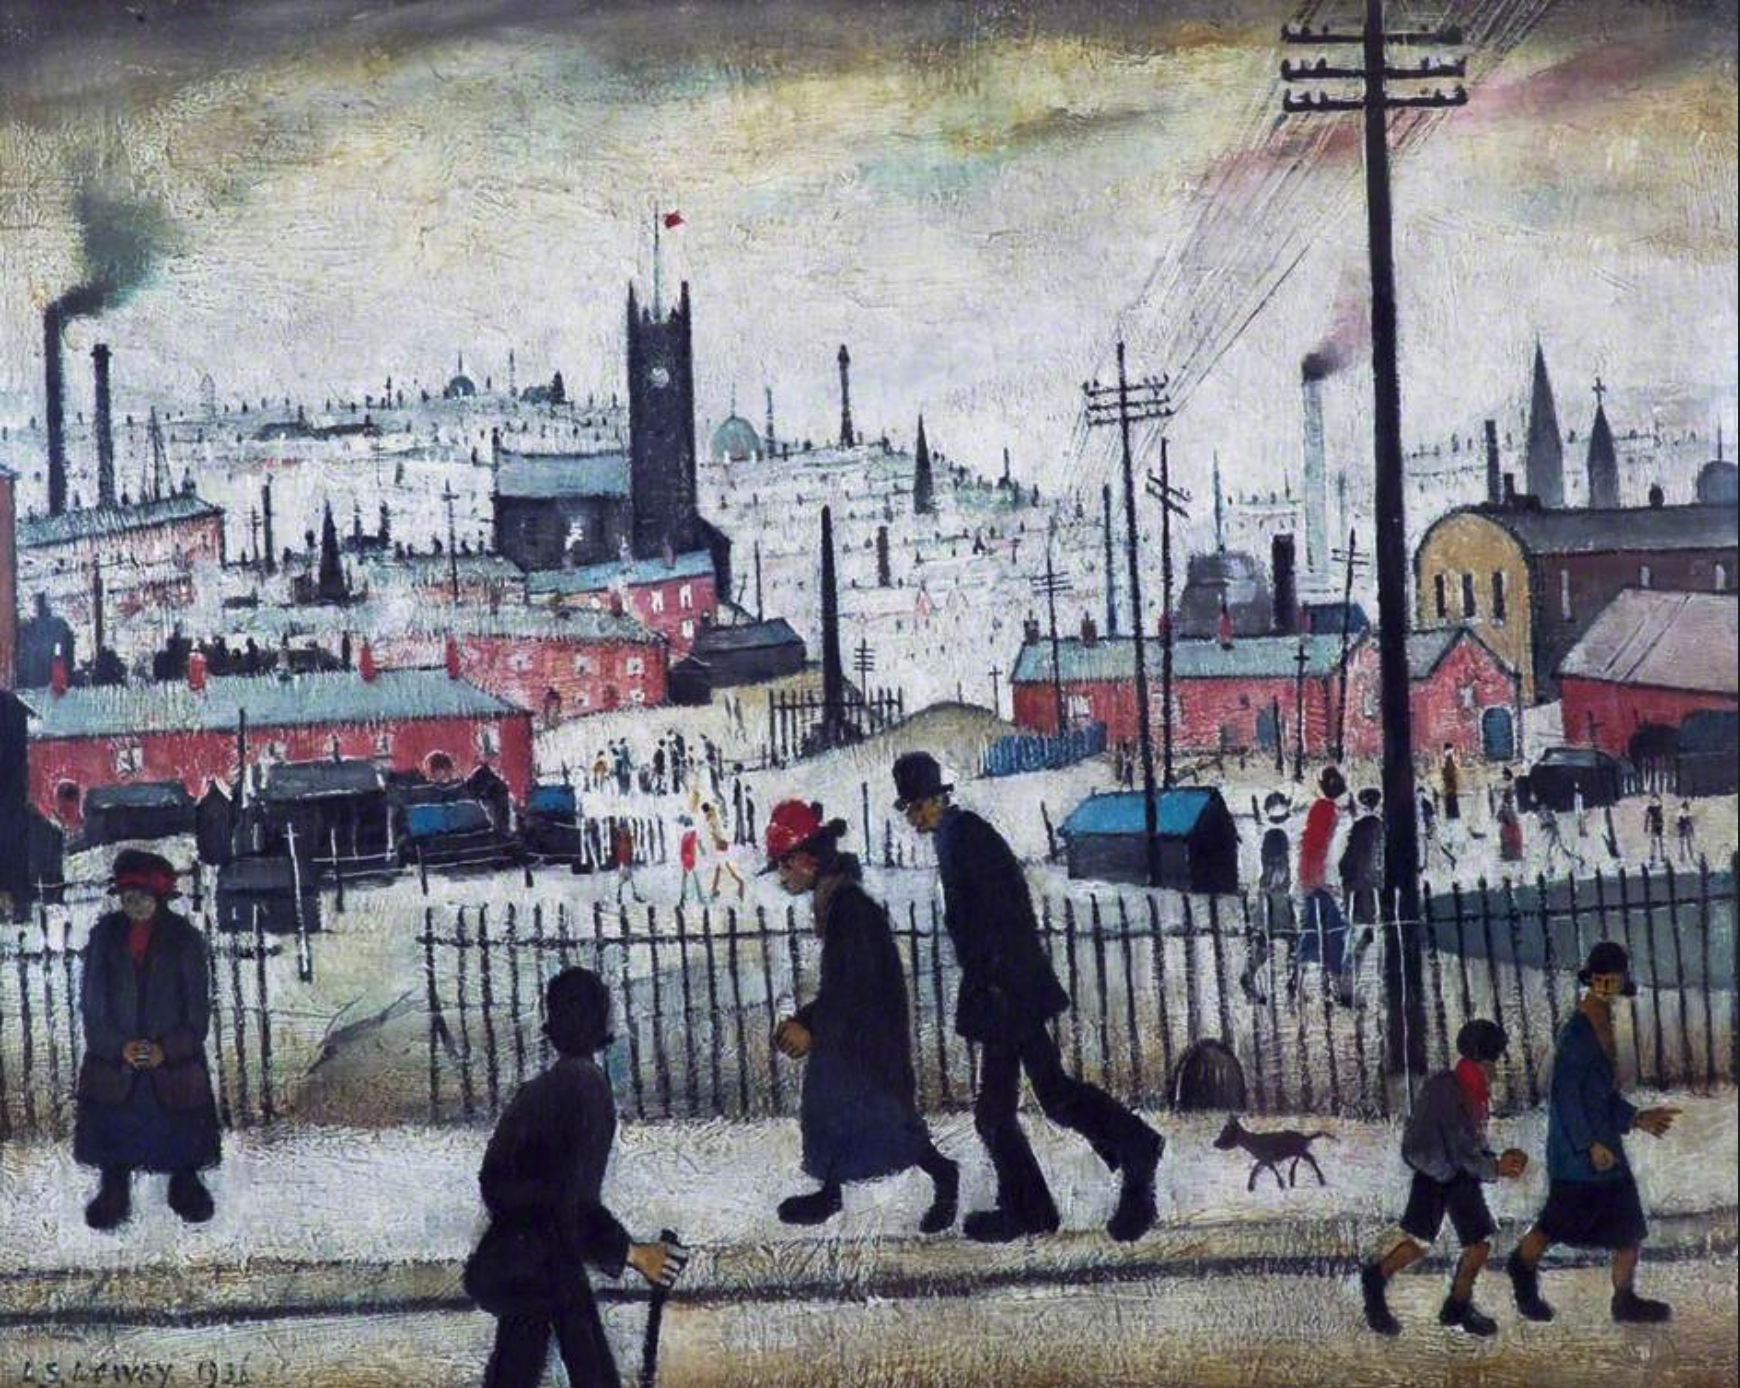 View of a Town (1936) by Laurence Stephen Lowry (1887 - 1976), English artist.